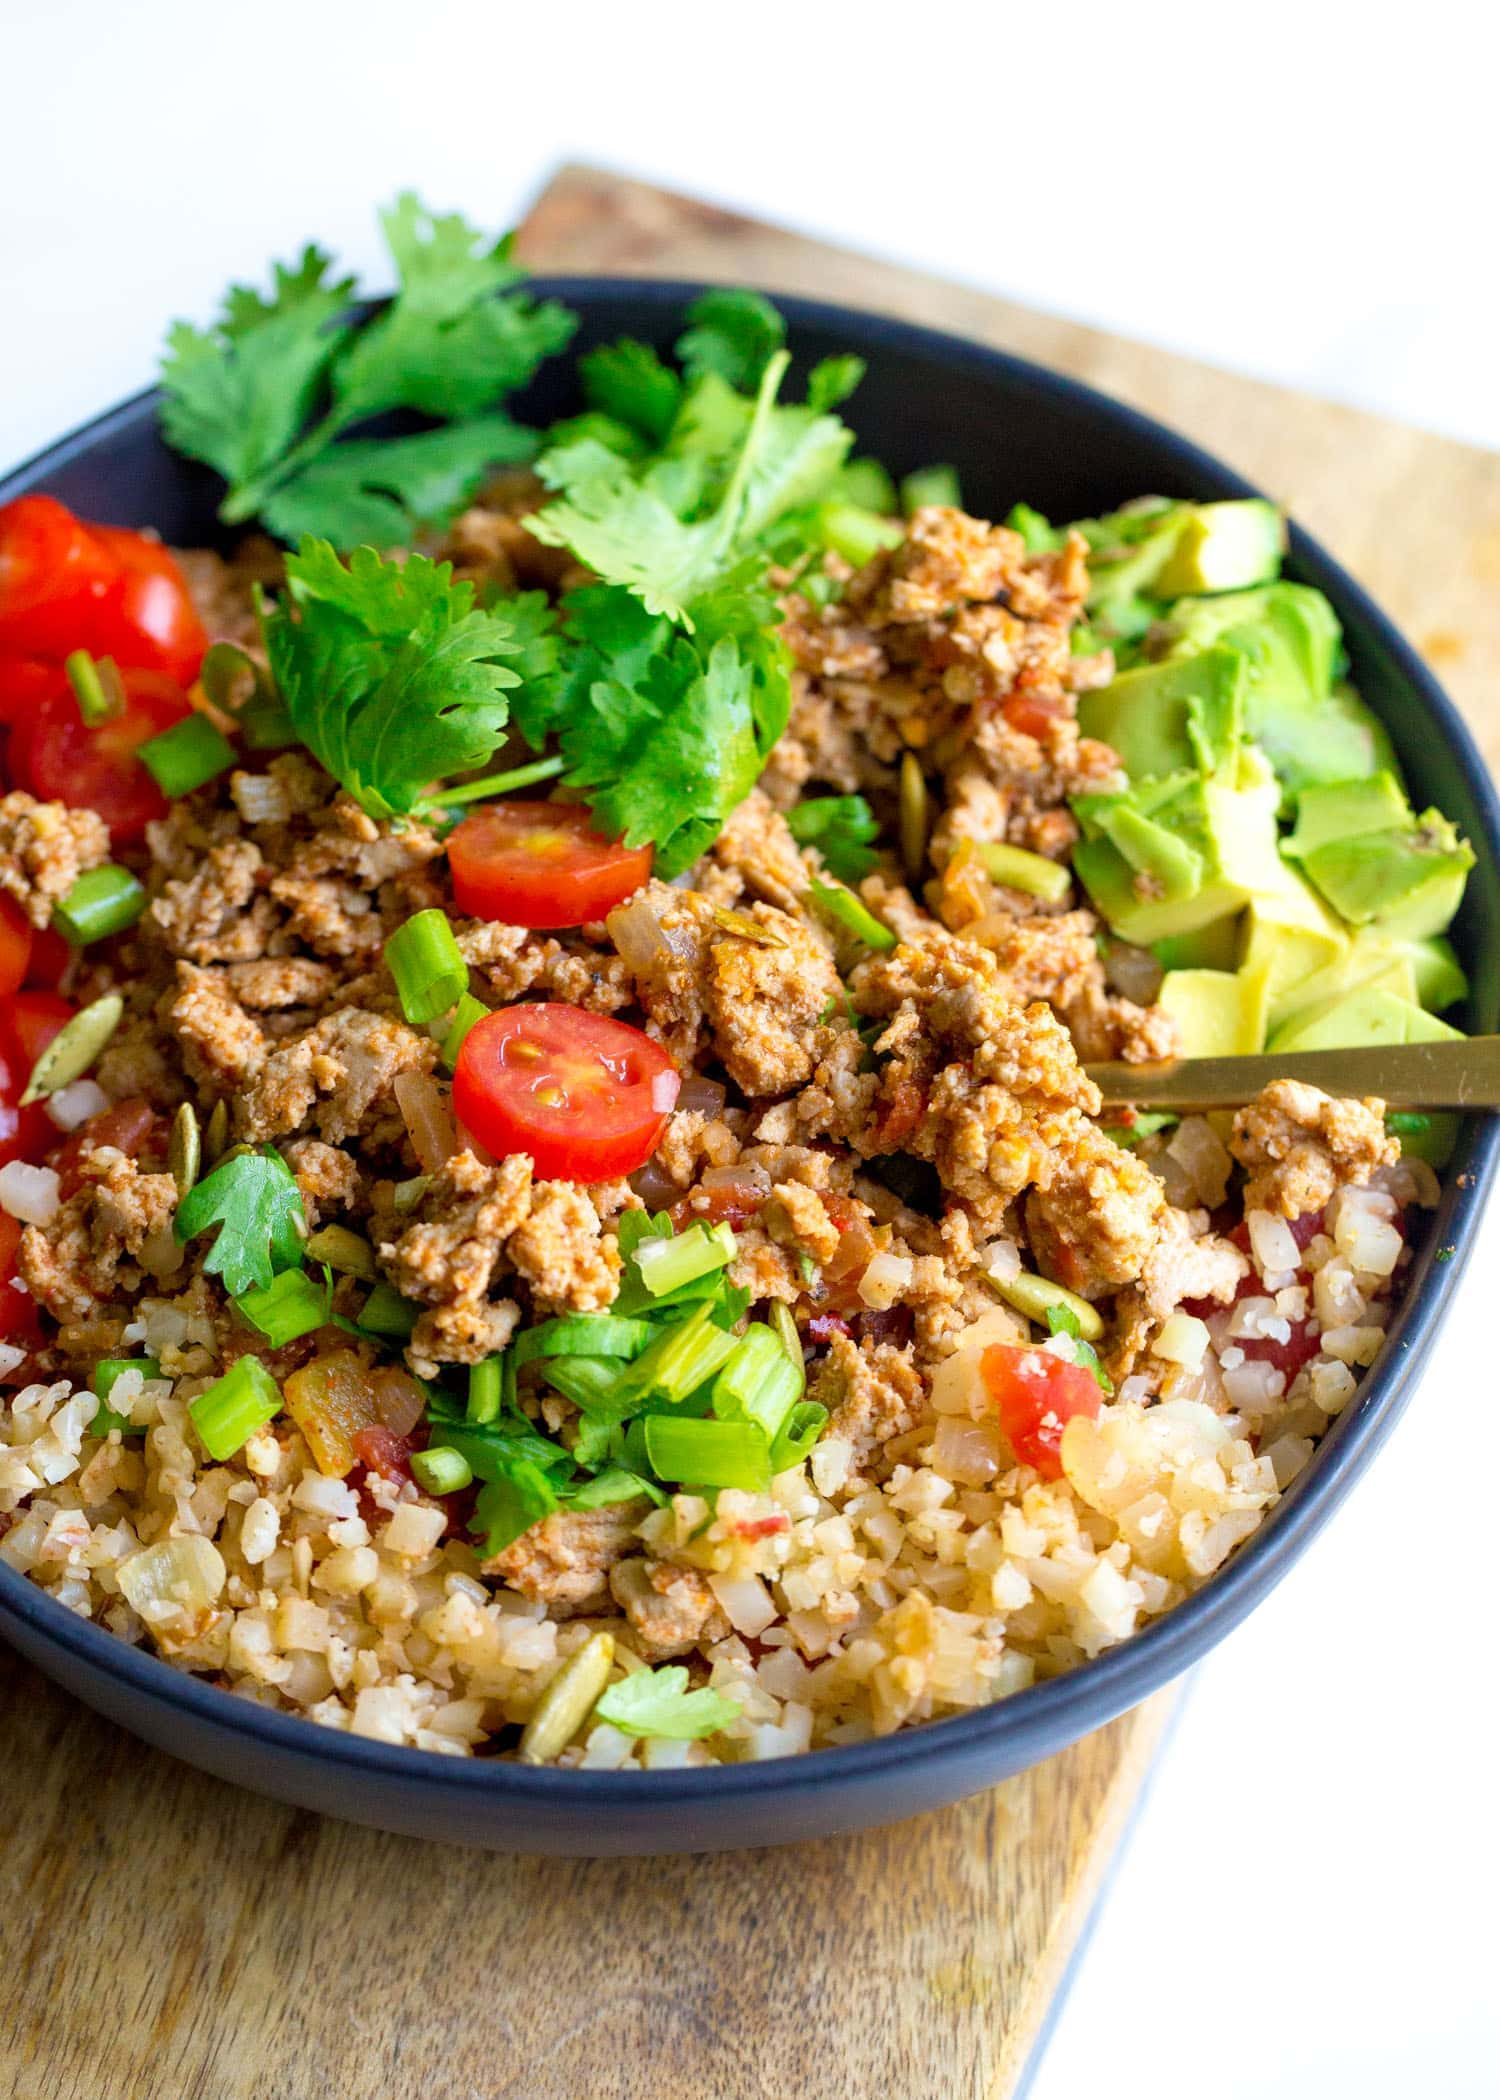 Bowl of ground turkey taco meat on Spanish cauliflower rice with tomatoes and cilantro.